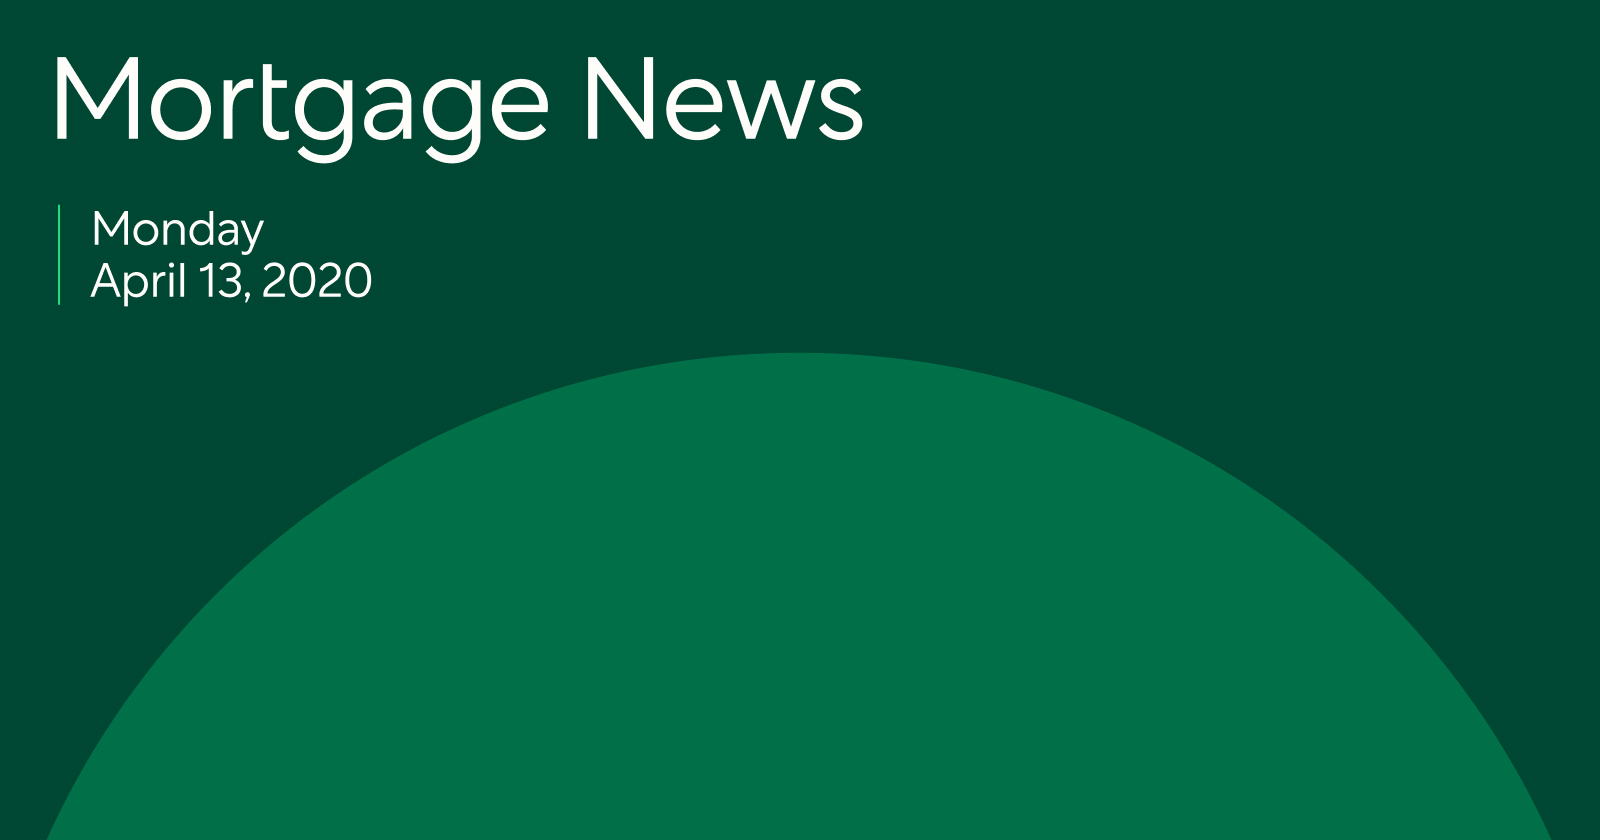 Mortgage News: Published by Better April 13, 2020